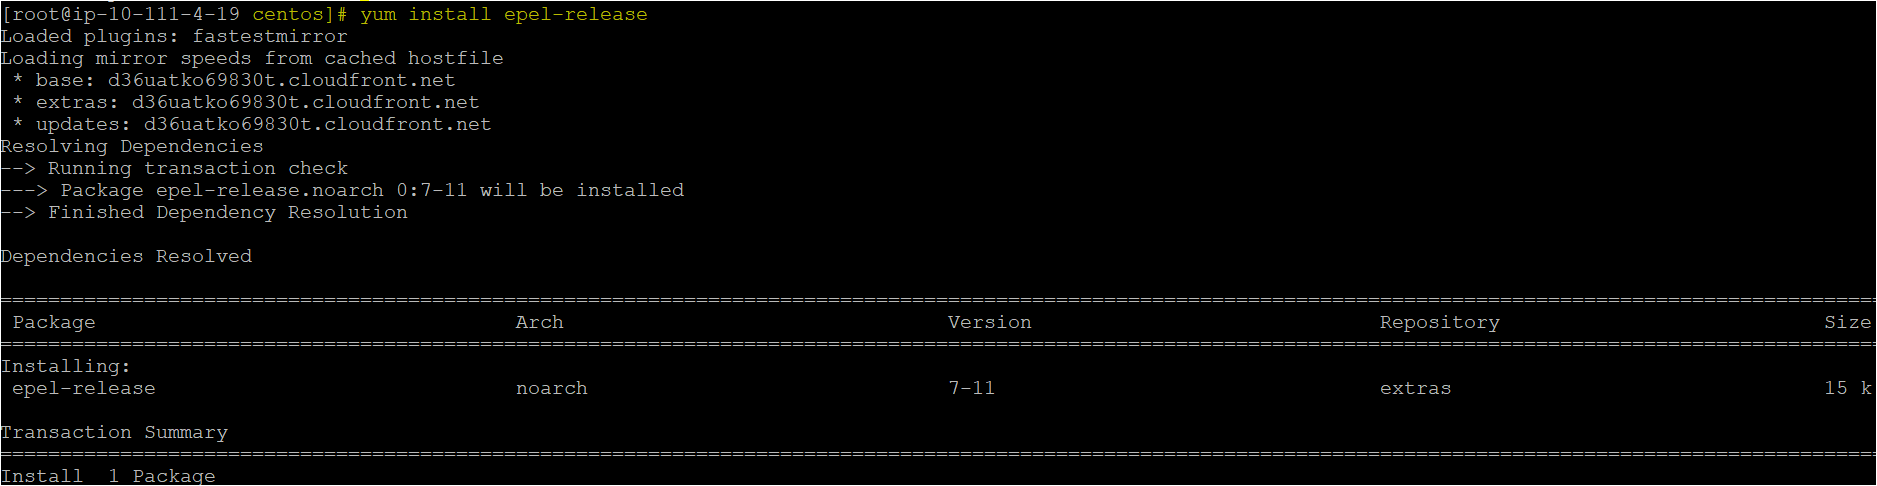 Installing the epel-release package using the yum command